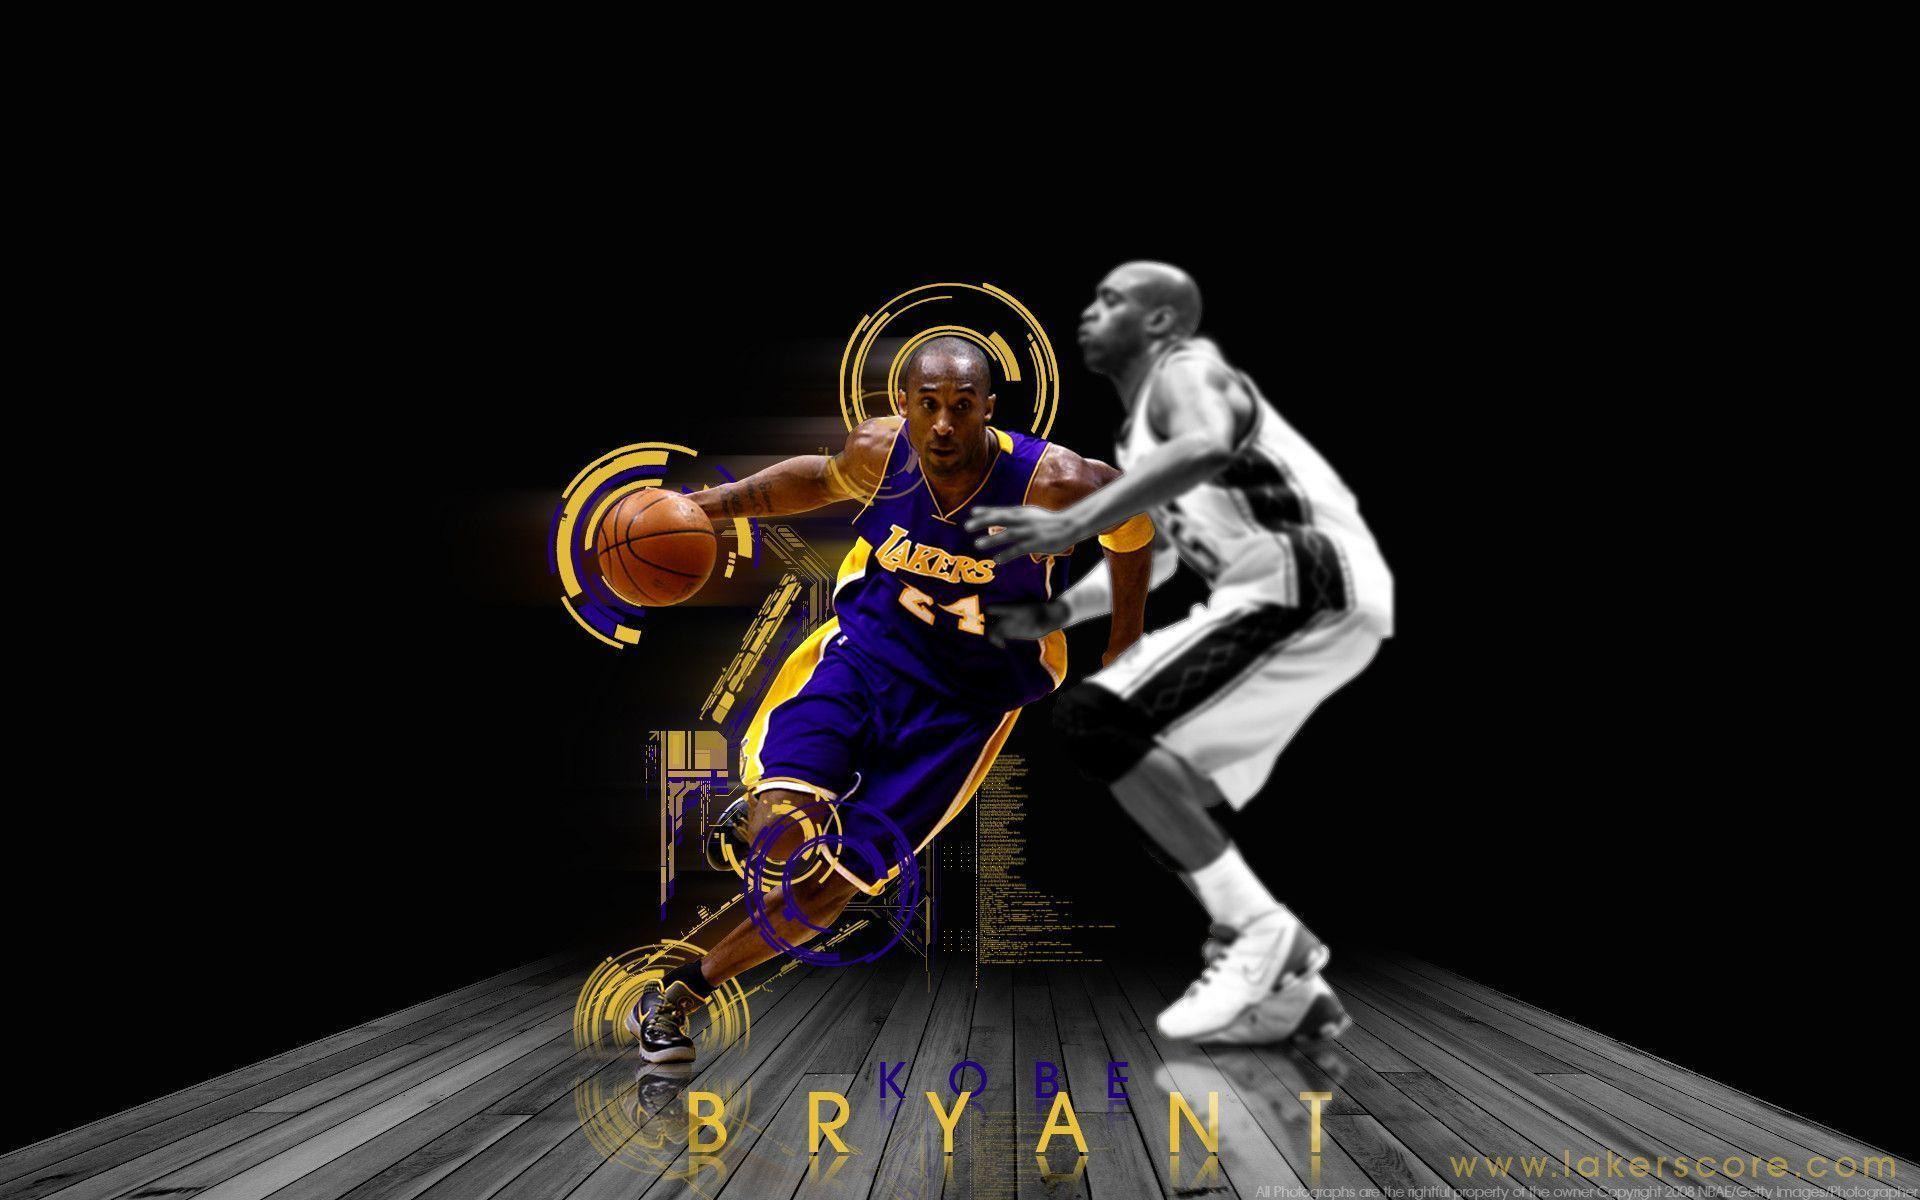 Cool Basketball Player Wallpapers: Kobe Bryant Wallpapers HD 2015